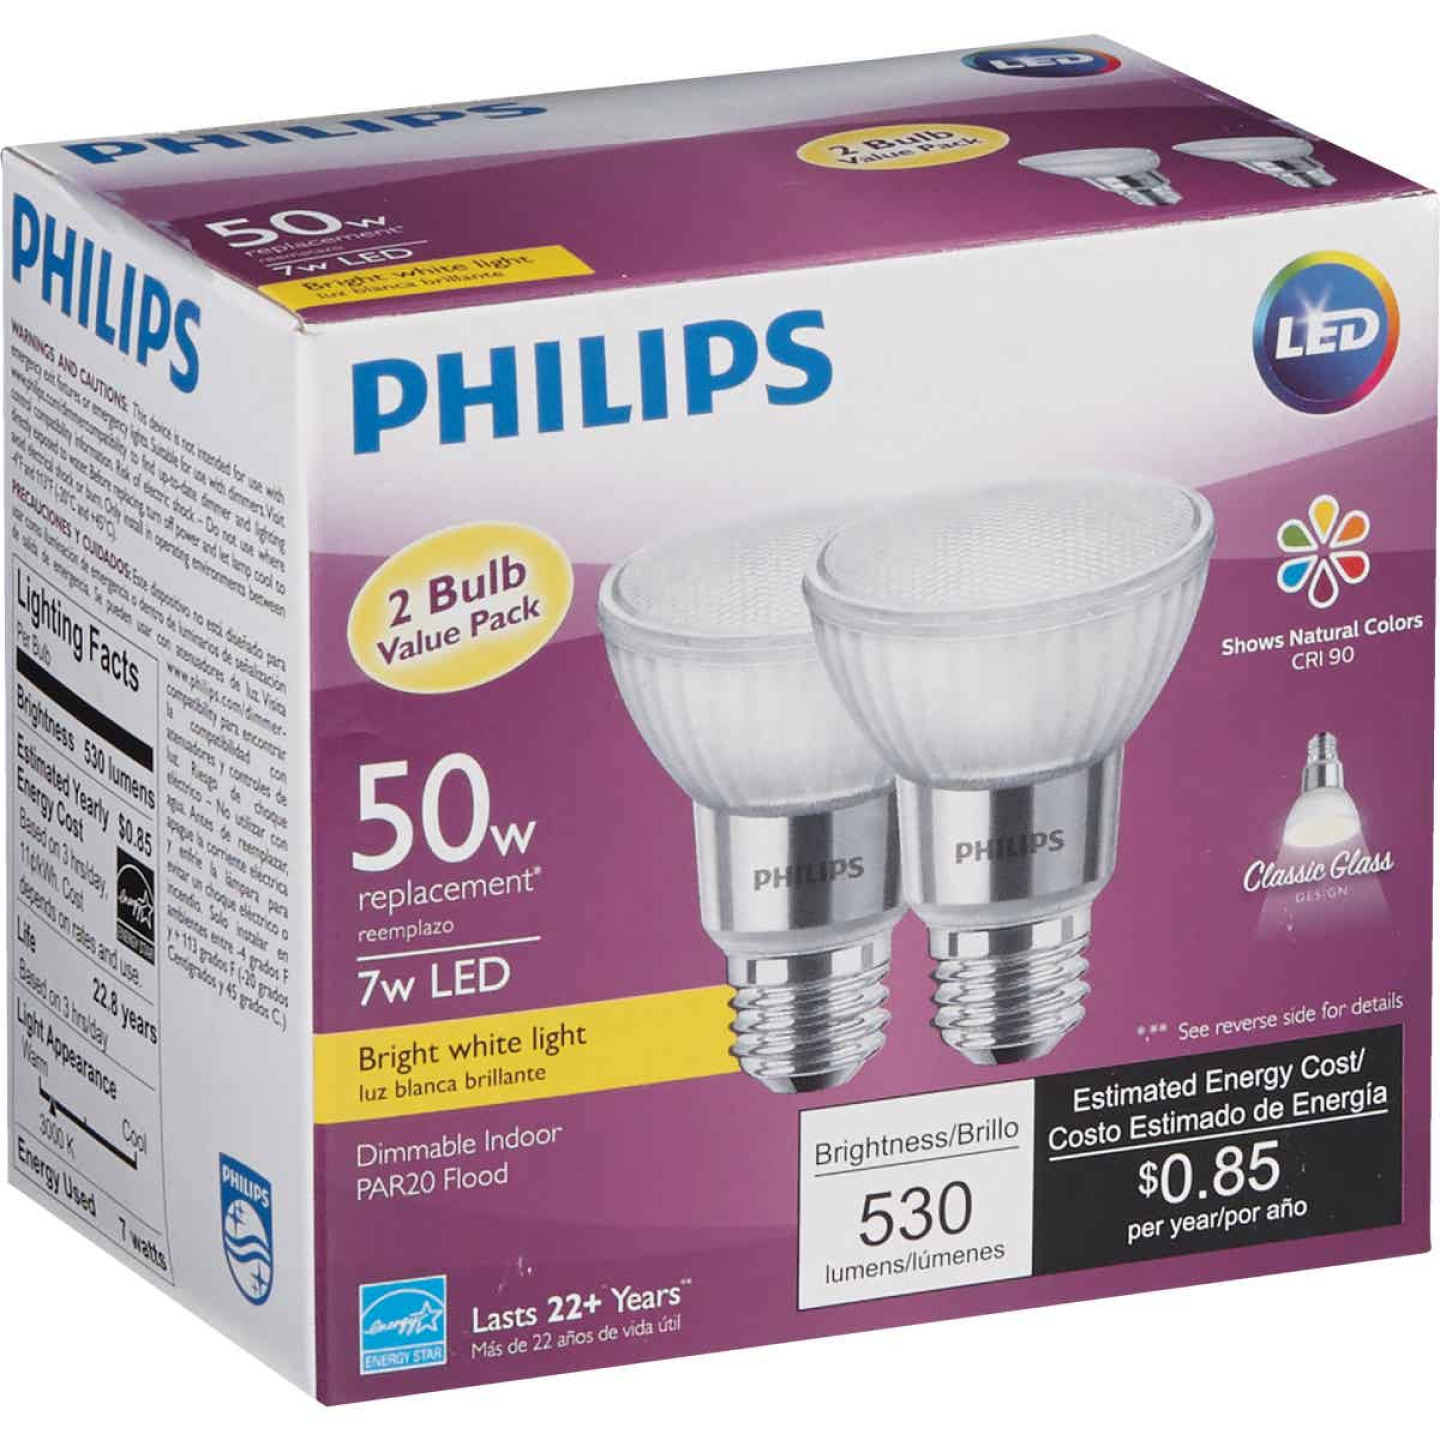 Philips 50W Equivalent Bright White PAR20 Medium Dimmable LED Floodight Light Bulb (2-Pack) Image 4